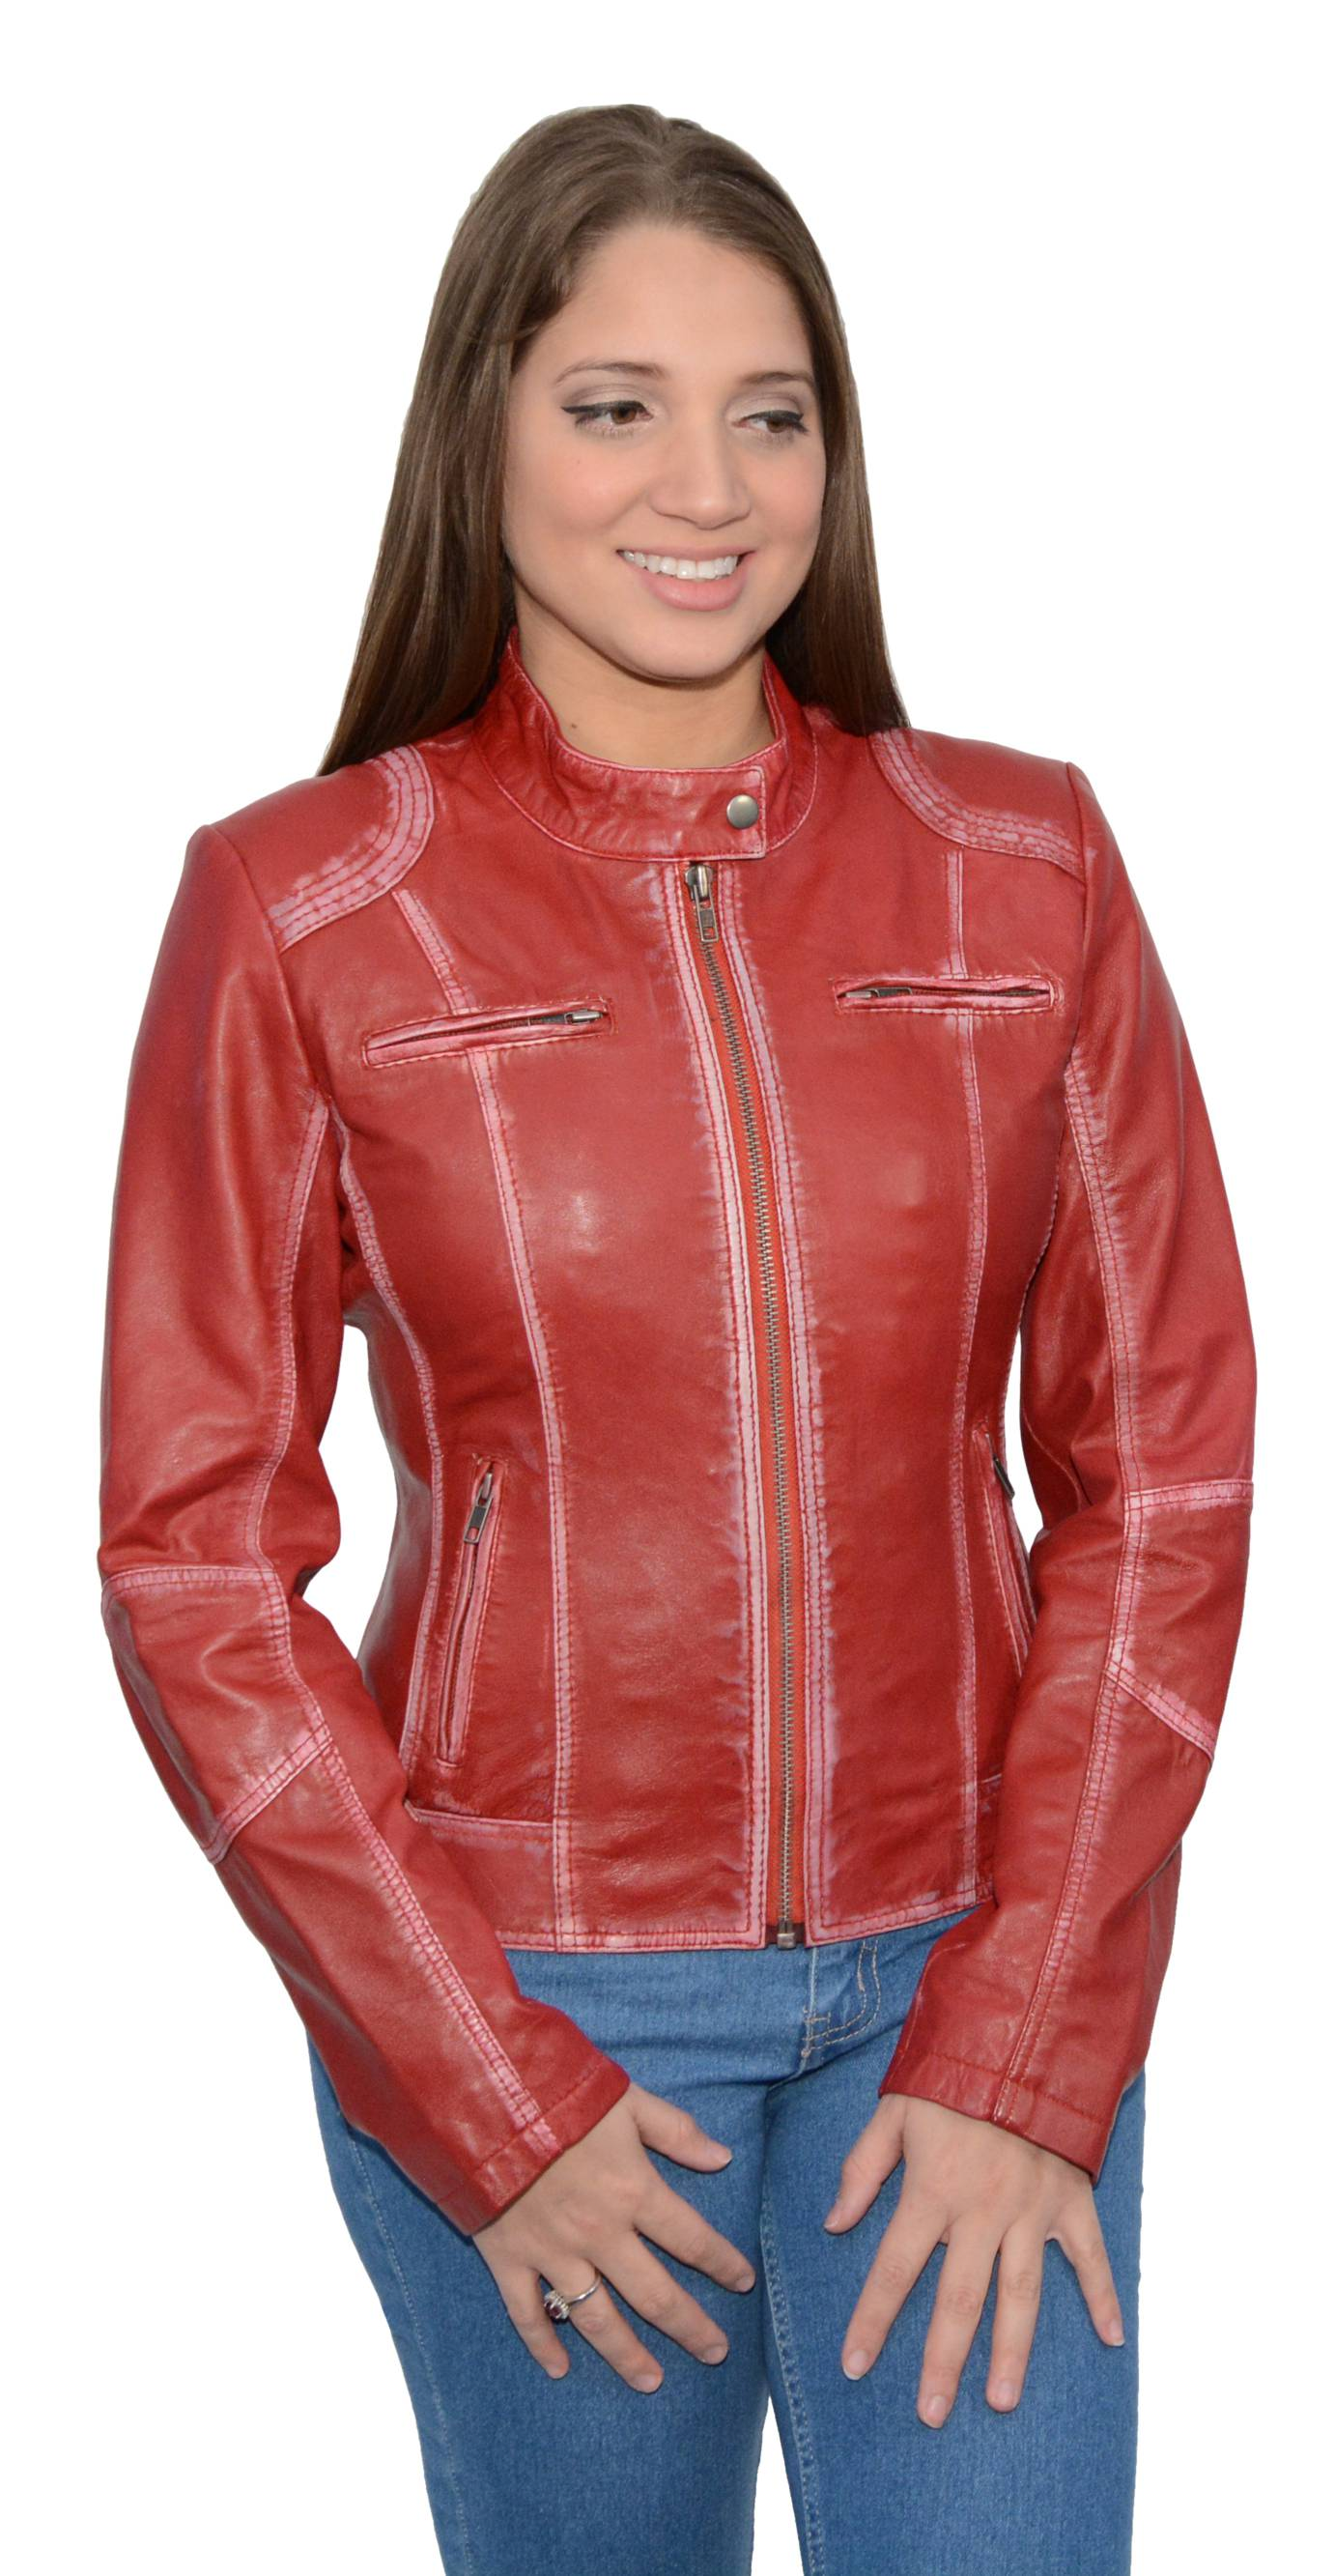 ladies red leather jacket - photo #47